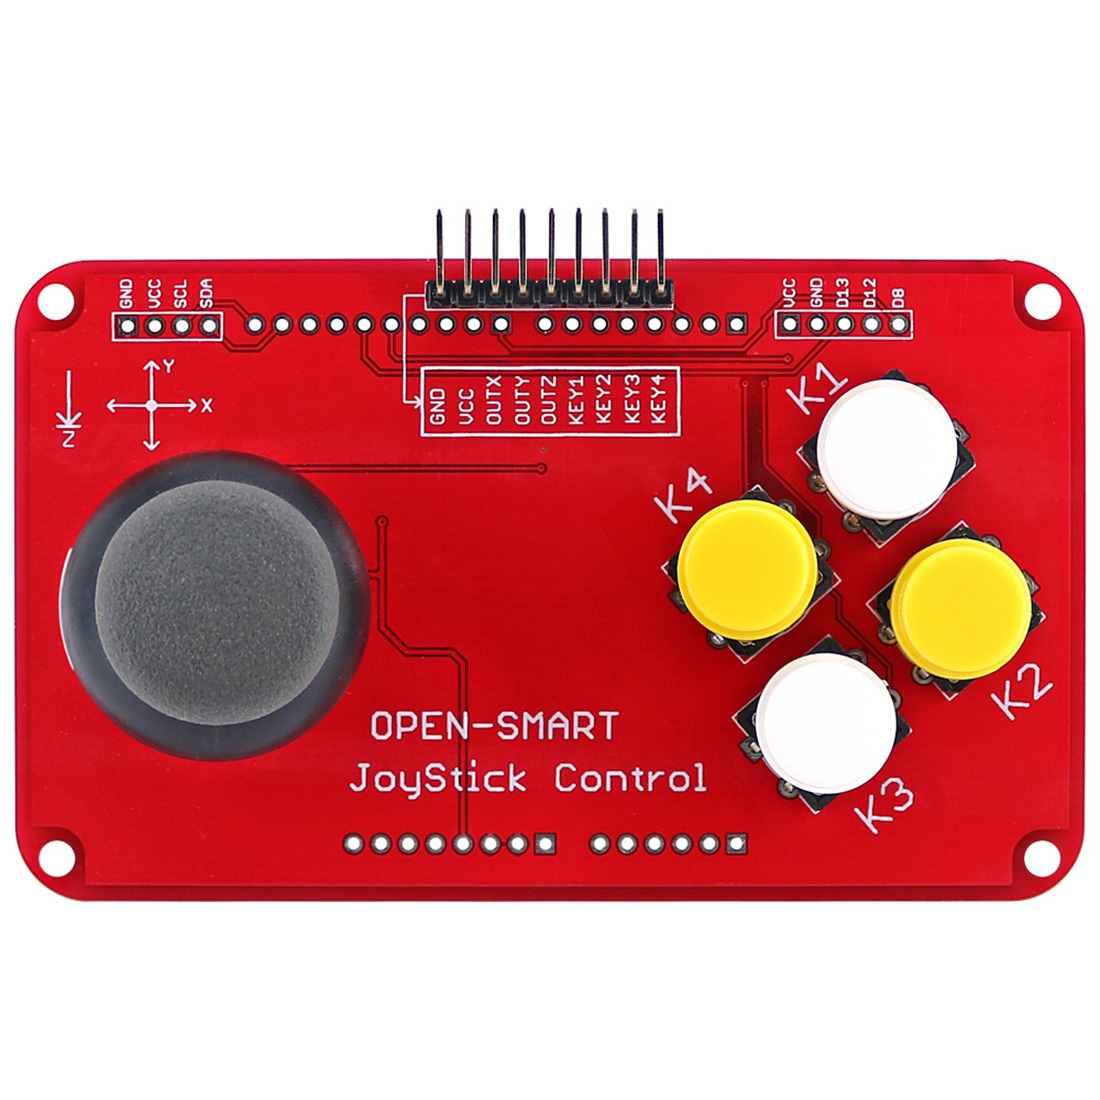 New PS2 Joystick Keypad Shield Joystick Game Controller Breakout Module Shield For Arduino / Nano / Pro Mini